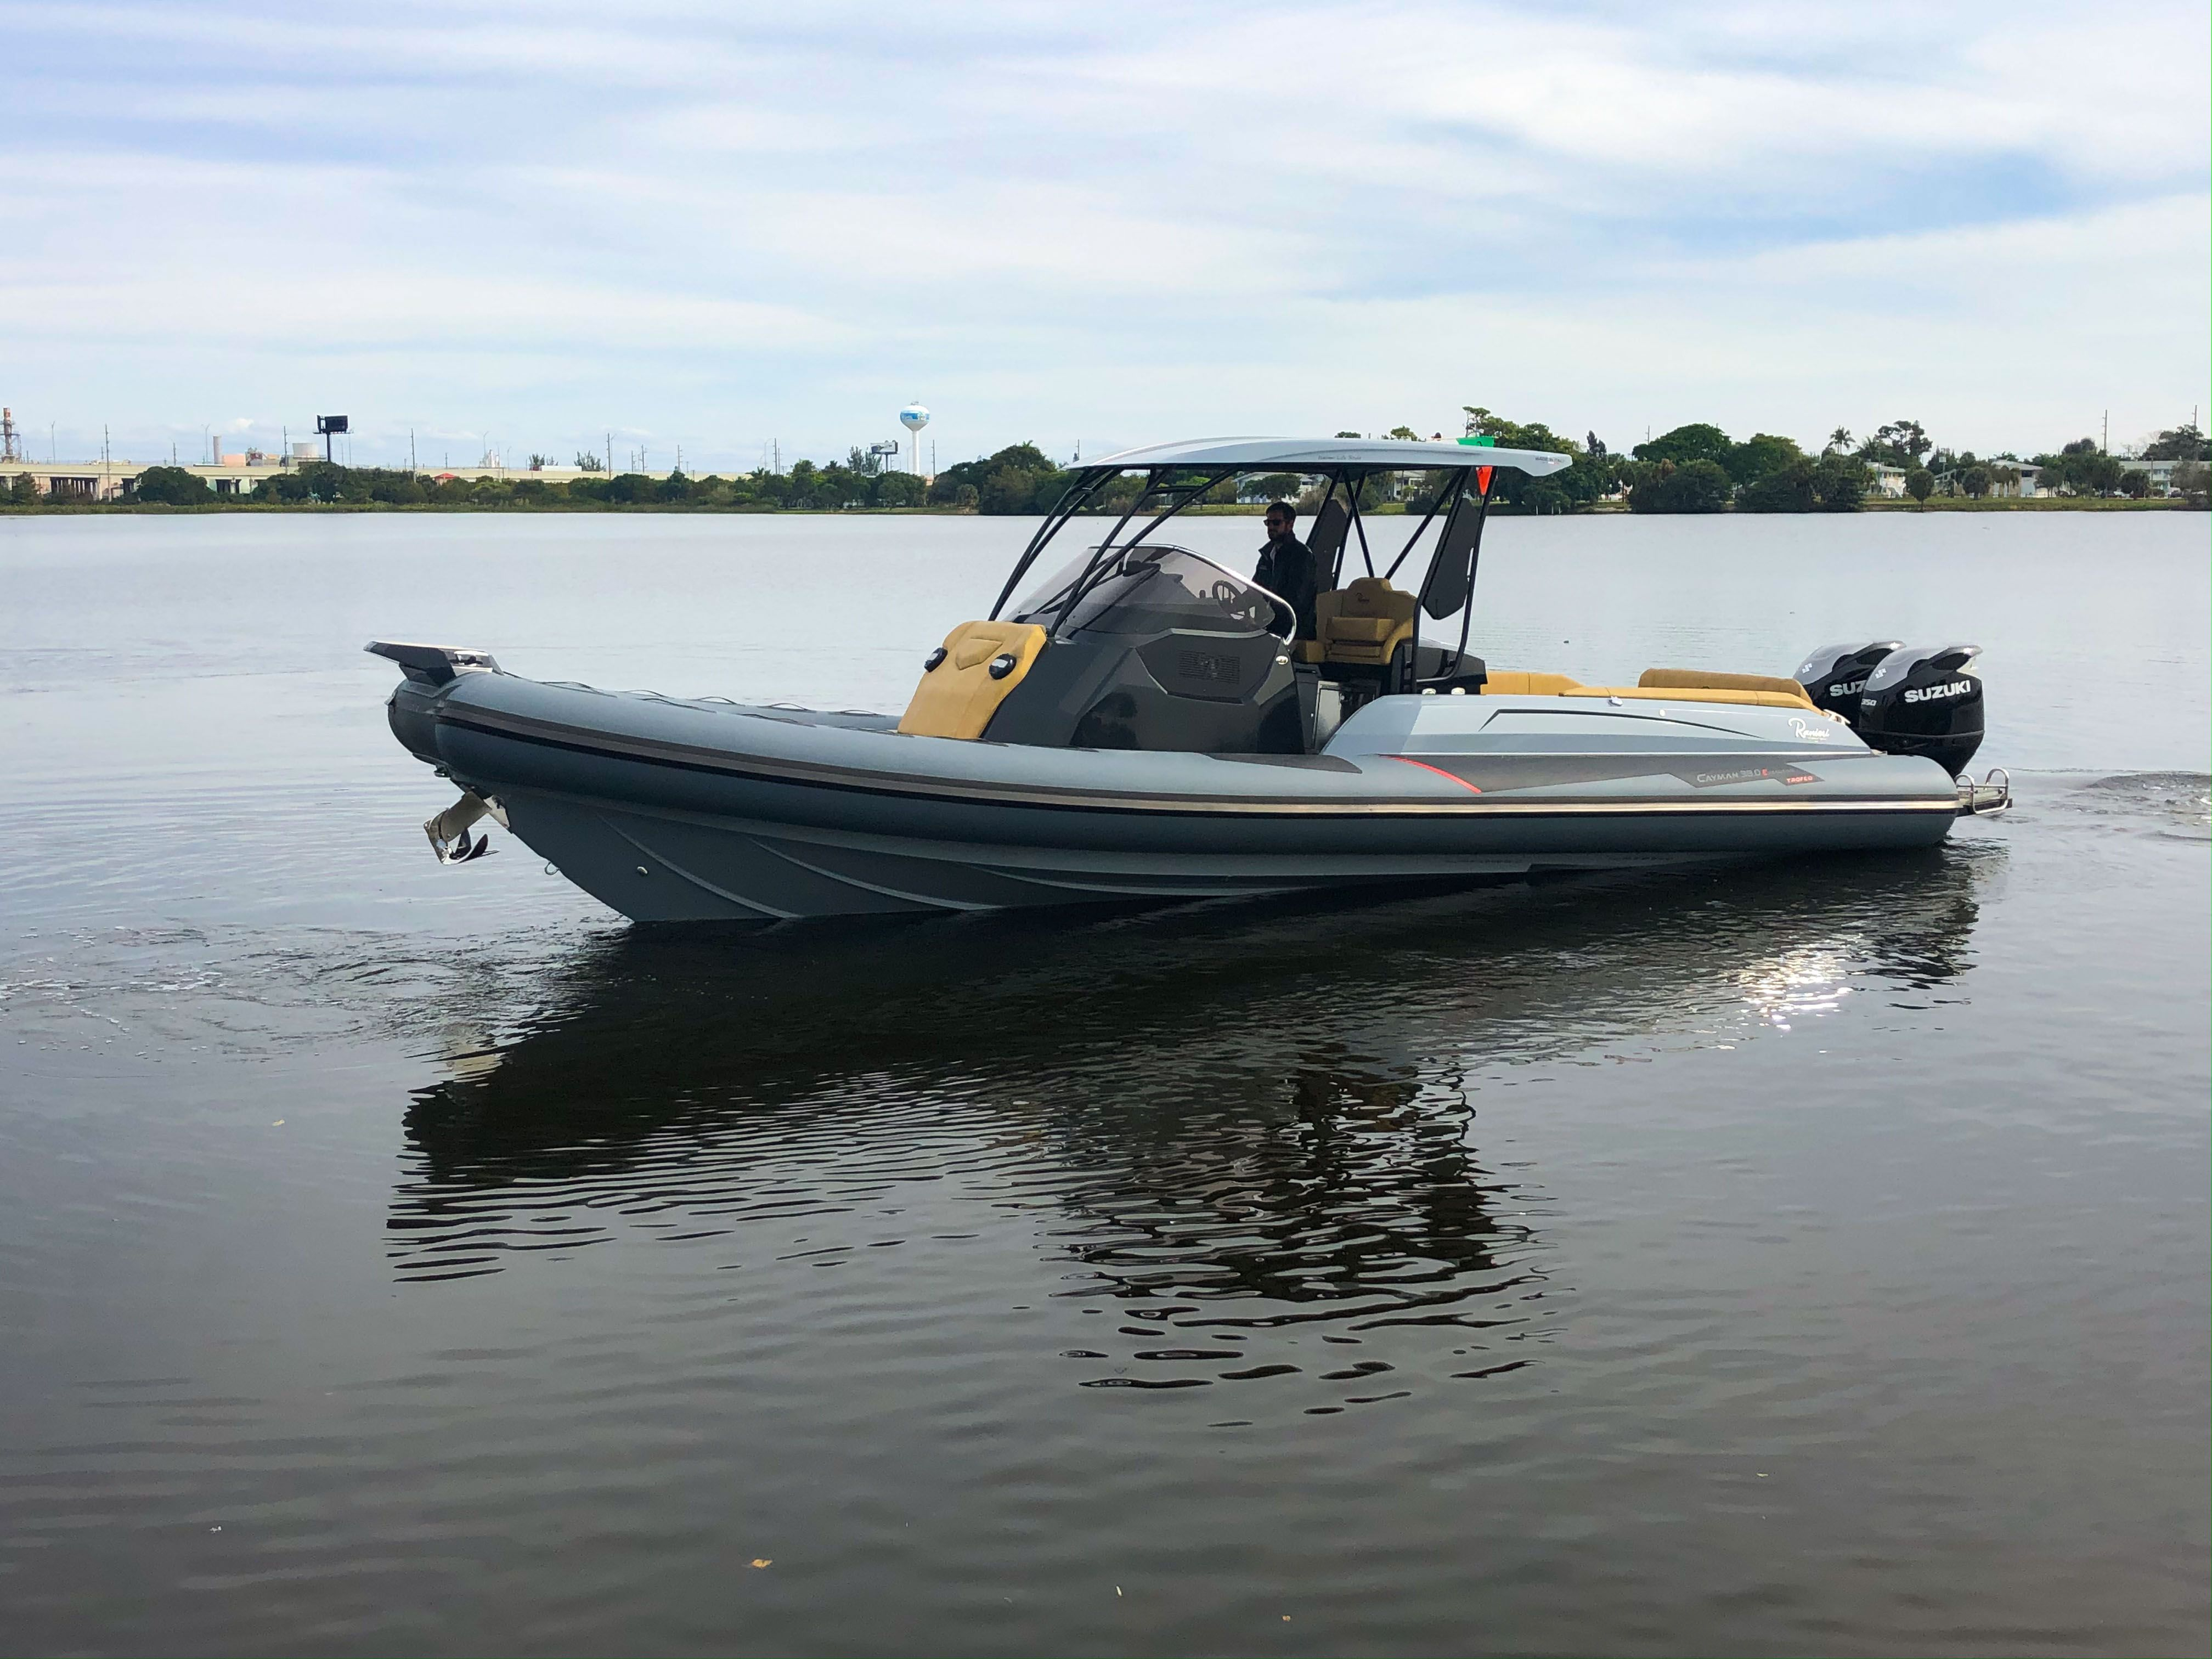 Thumbnail 50 for New 2019 Ranieri Cayman 38 Executive boat for sale in West Palm Beach, FL